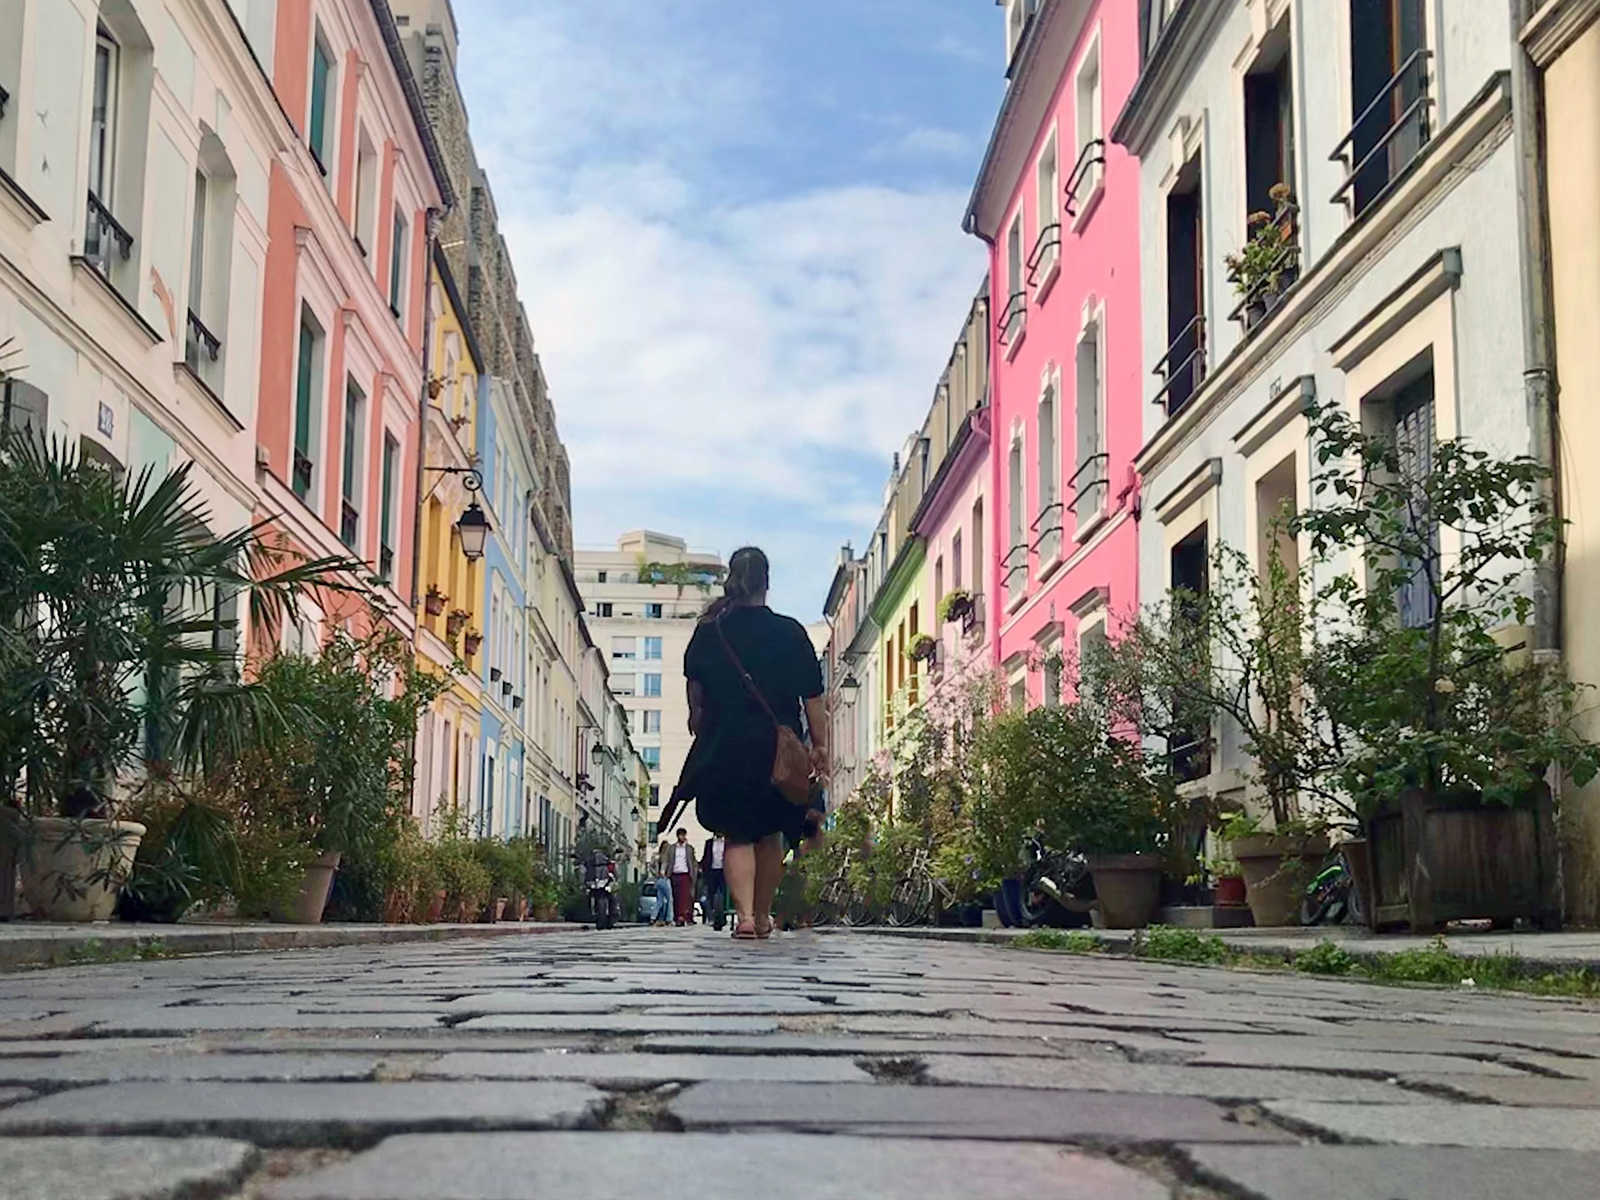 Insta-Paris: 12 Orte in Paris für das perfekte Instagram-Foto